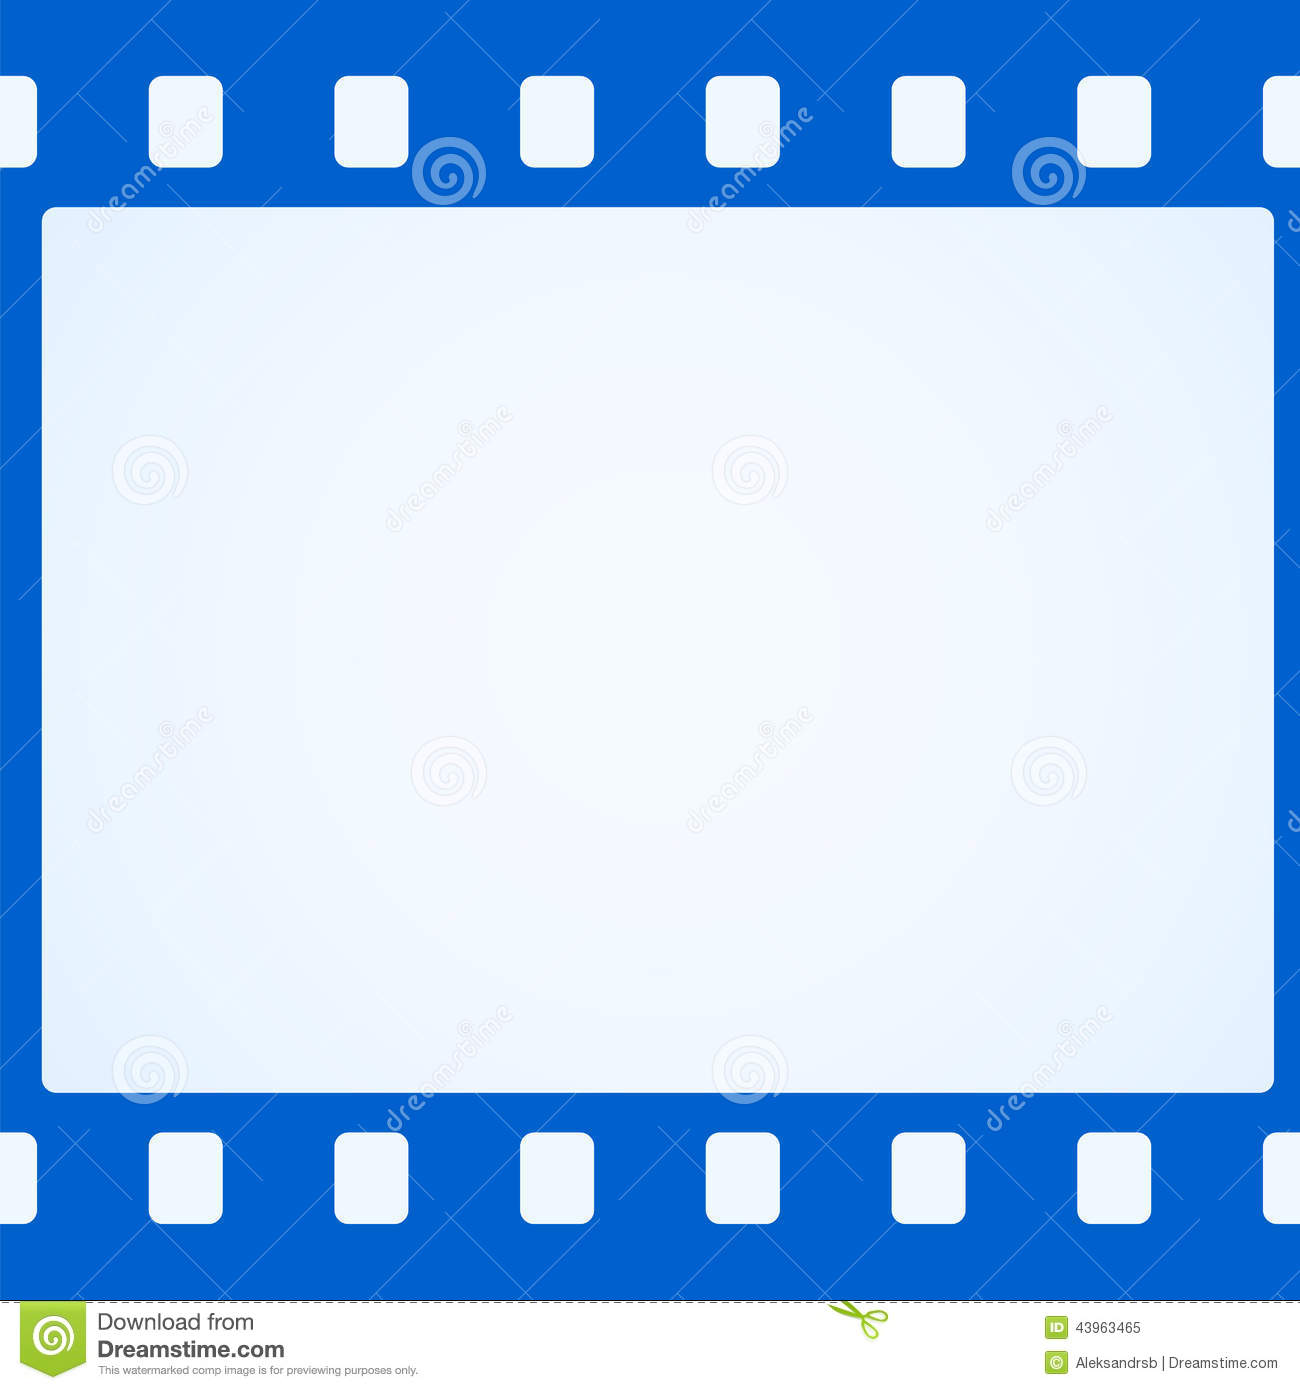 Simple Blue Film Strip Background Stock Vector Illustration Of